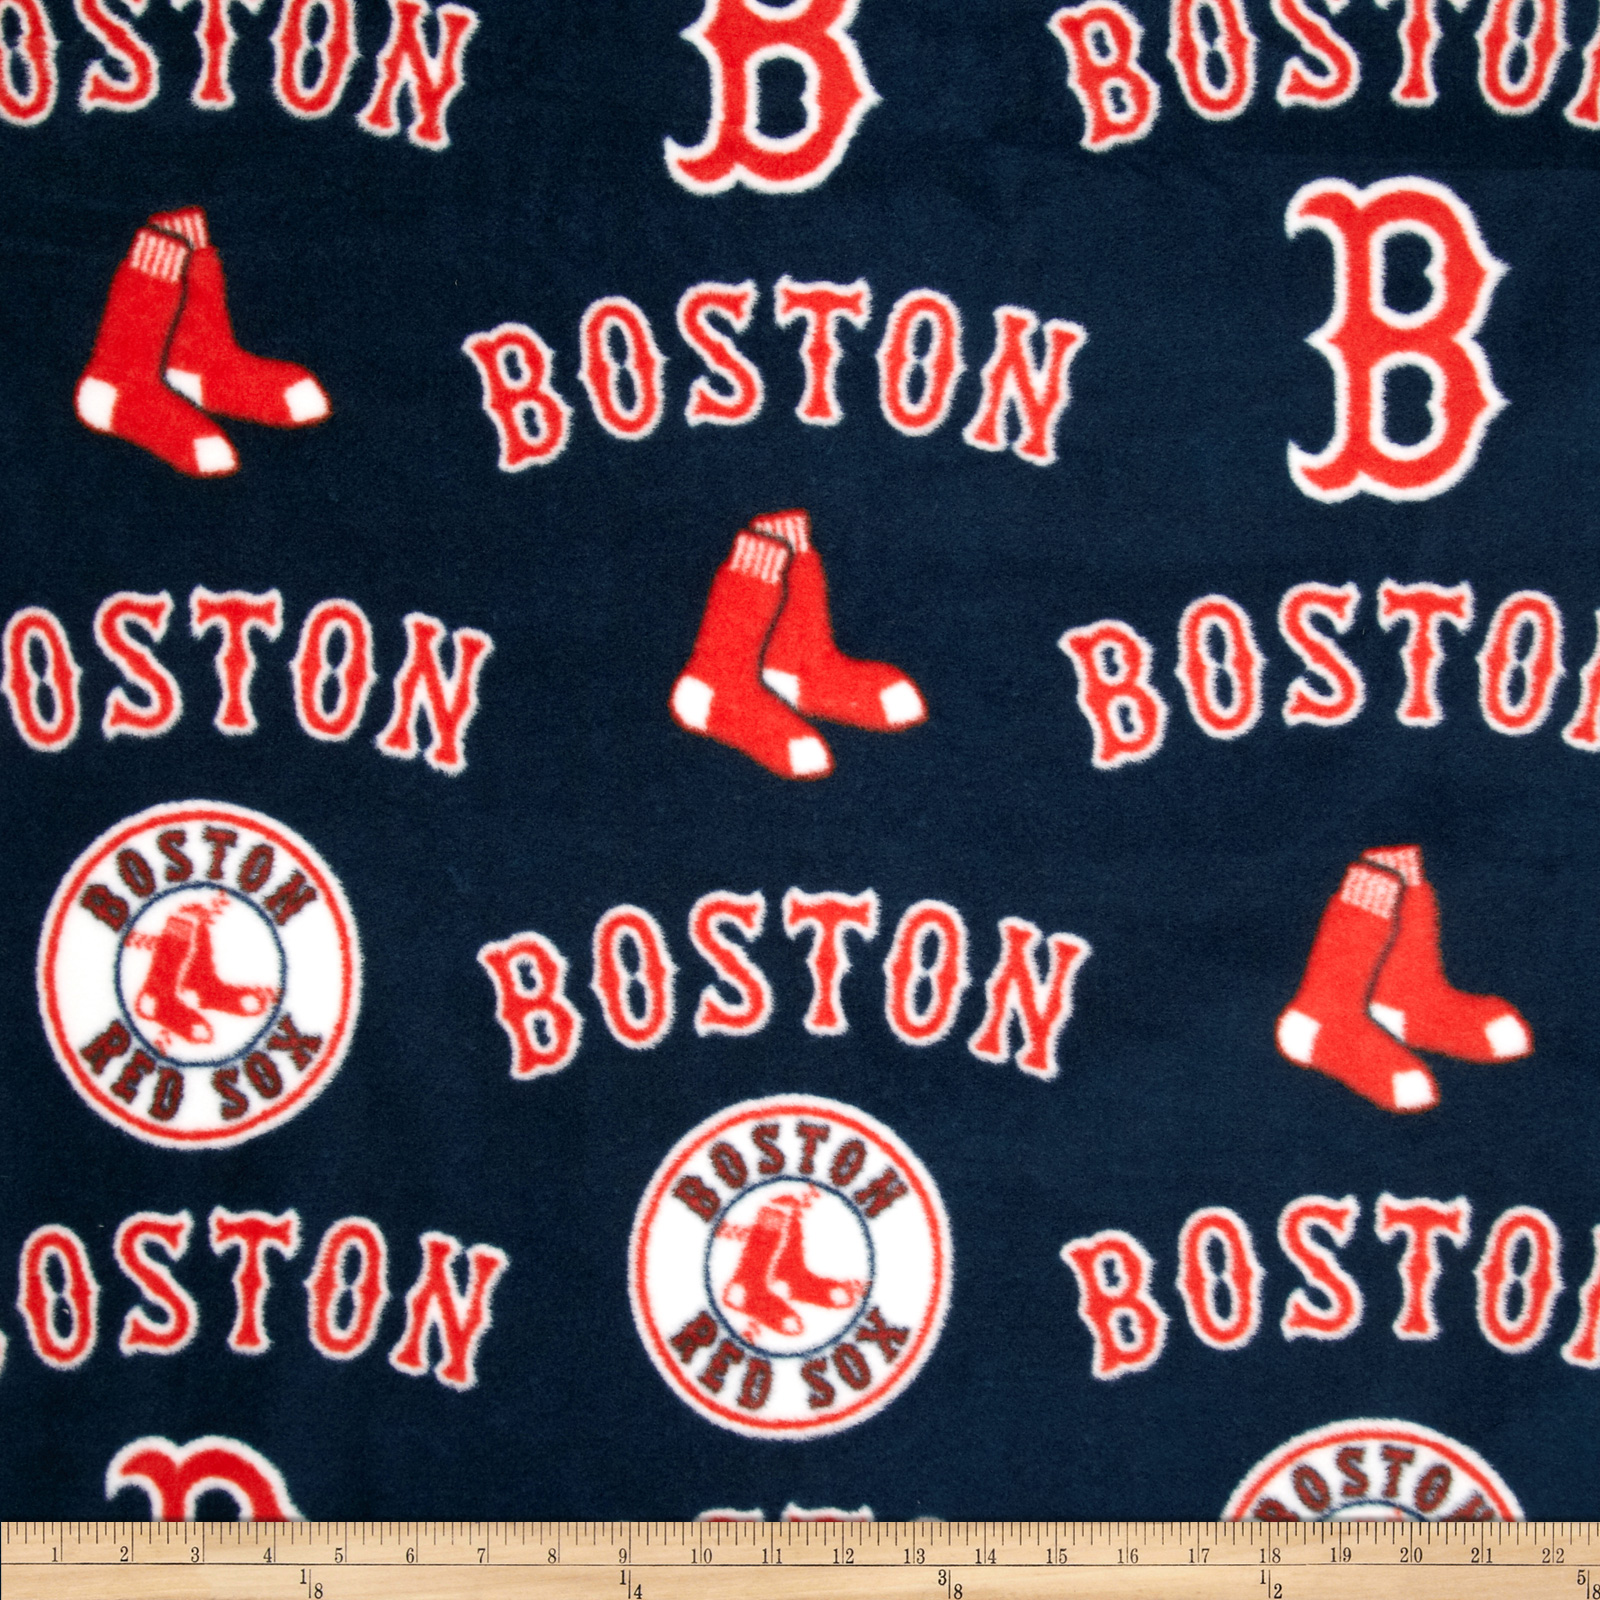 MLB Fleece Boston Red Sox Toss White/Red Fabric